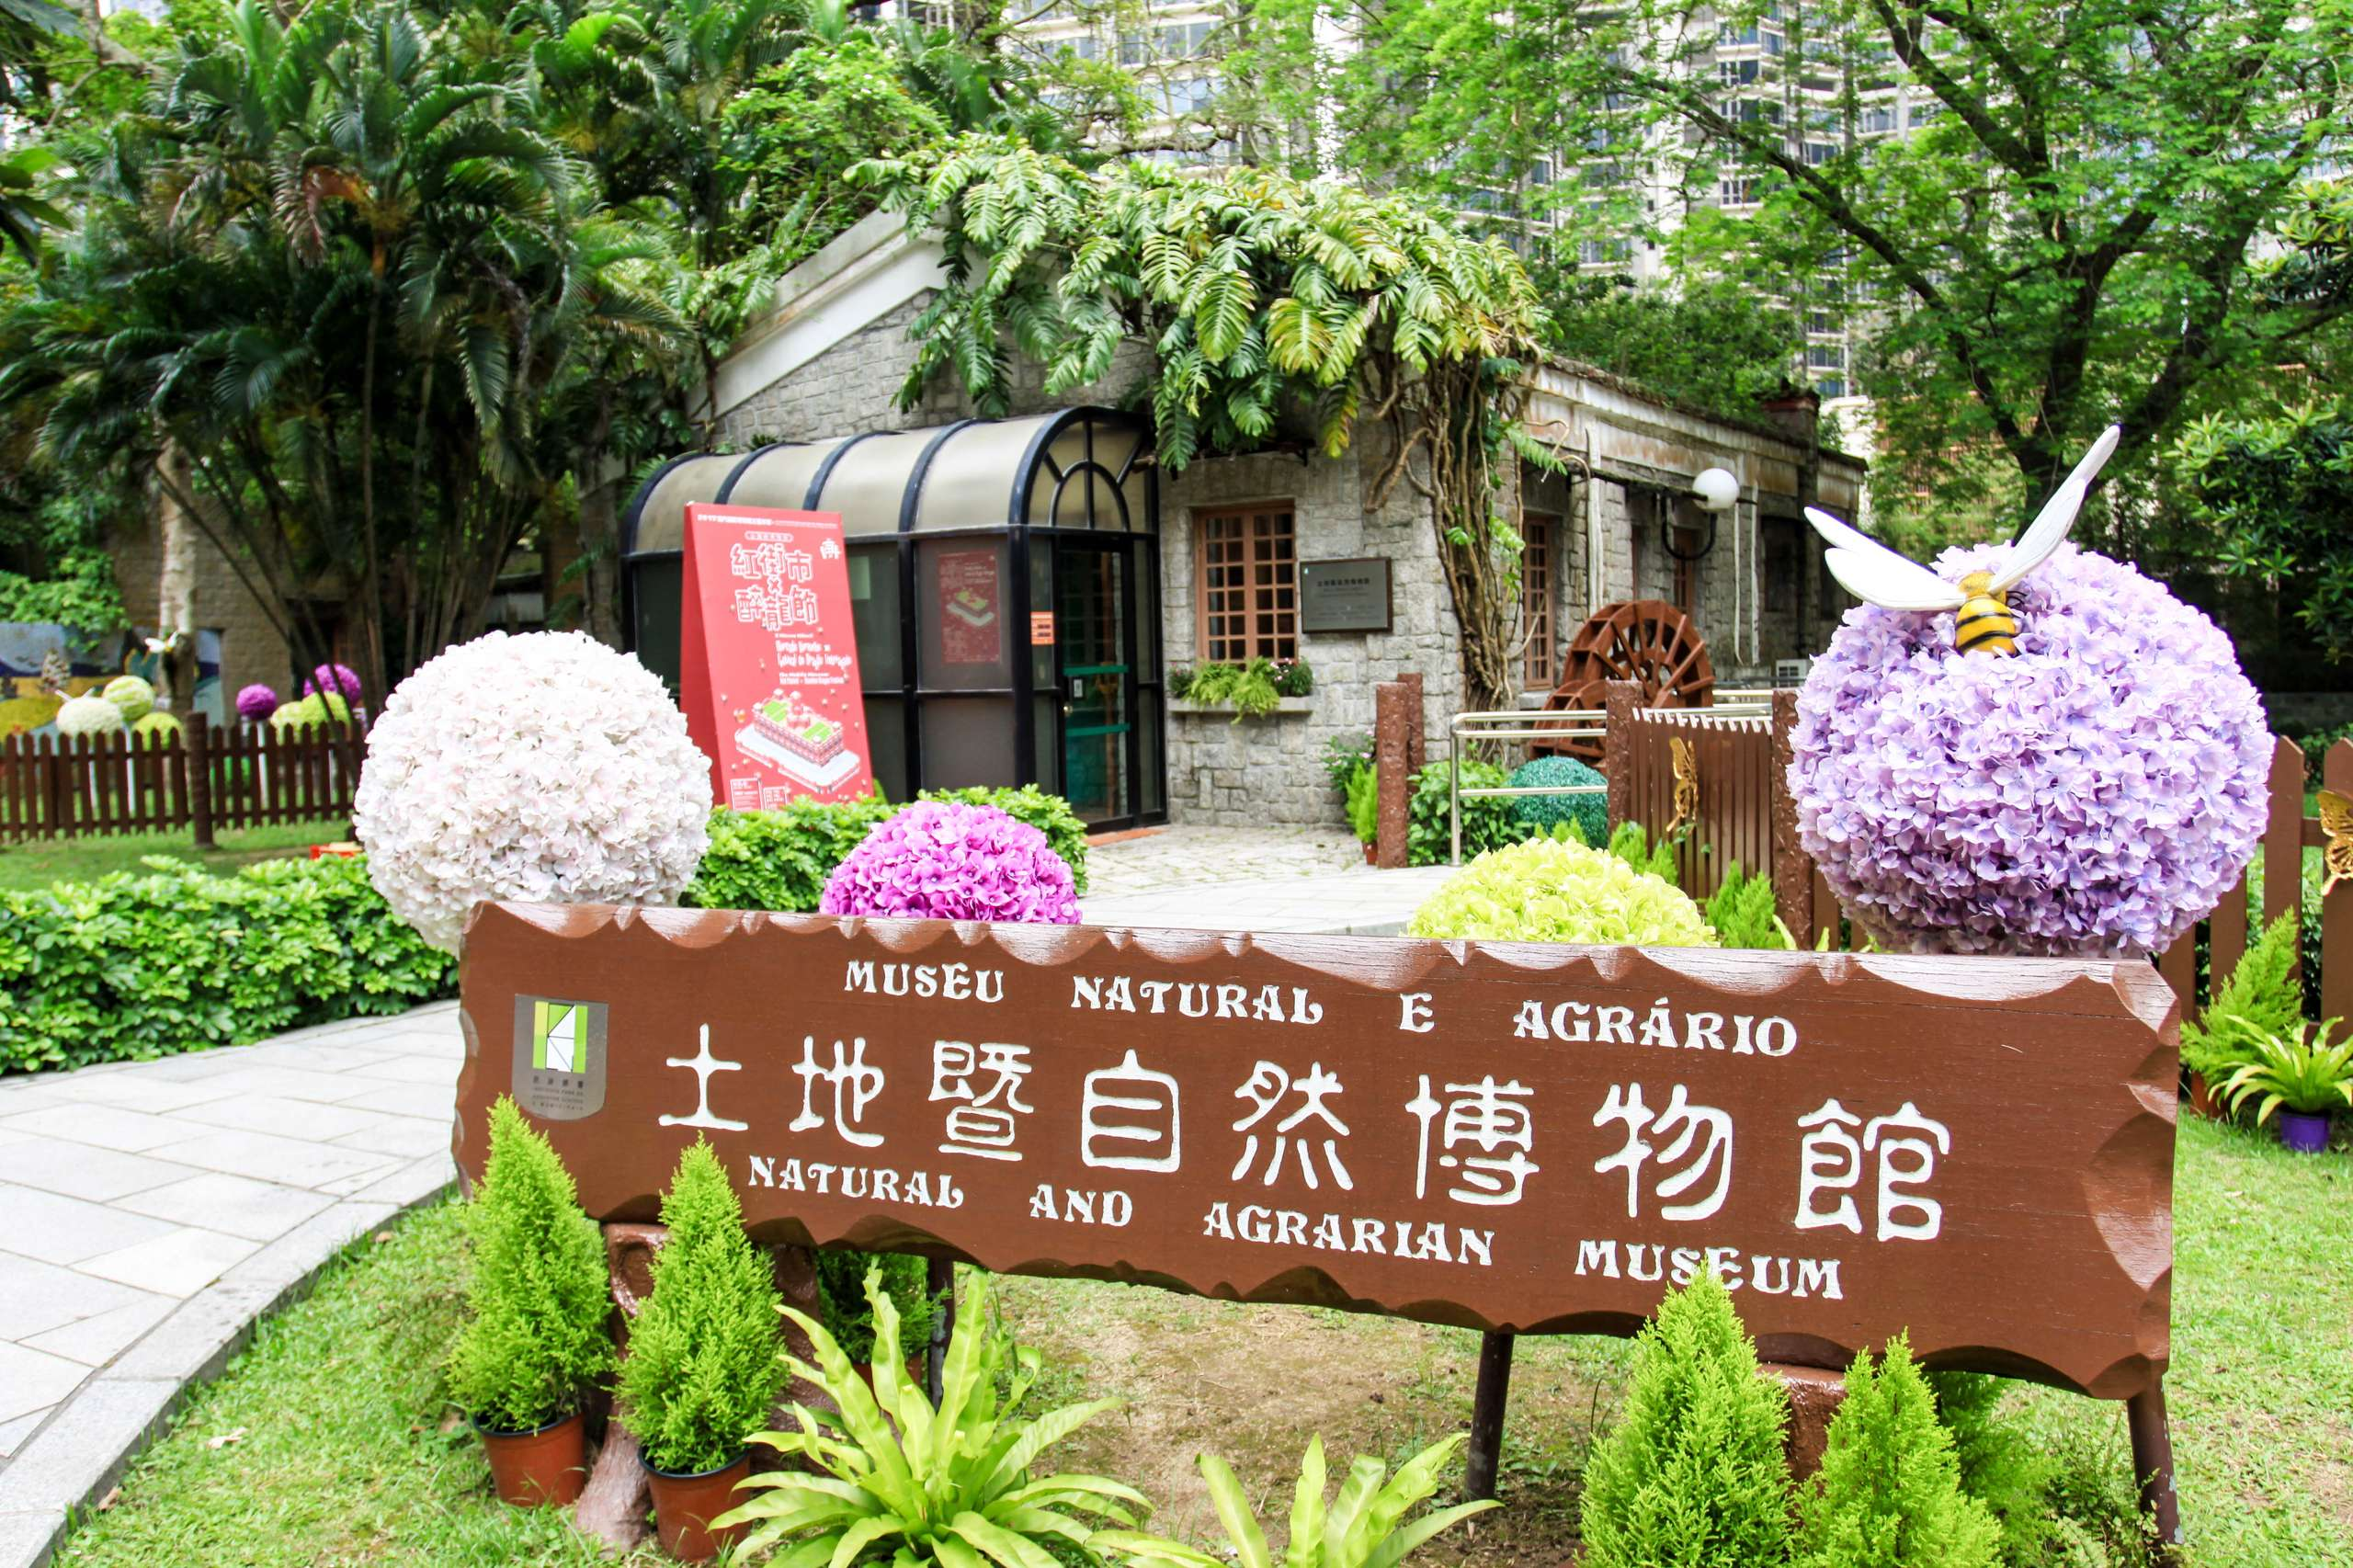 Natural and Agrarian Museum entrance